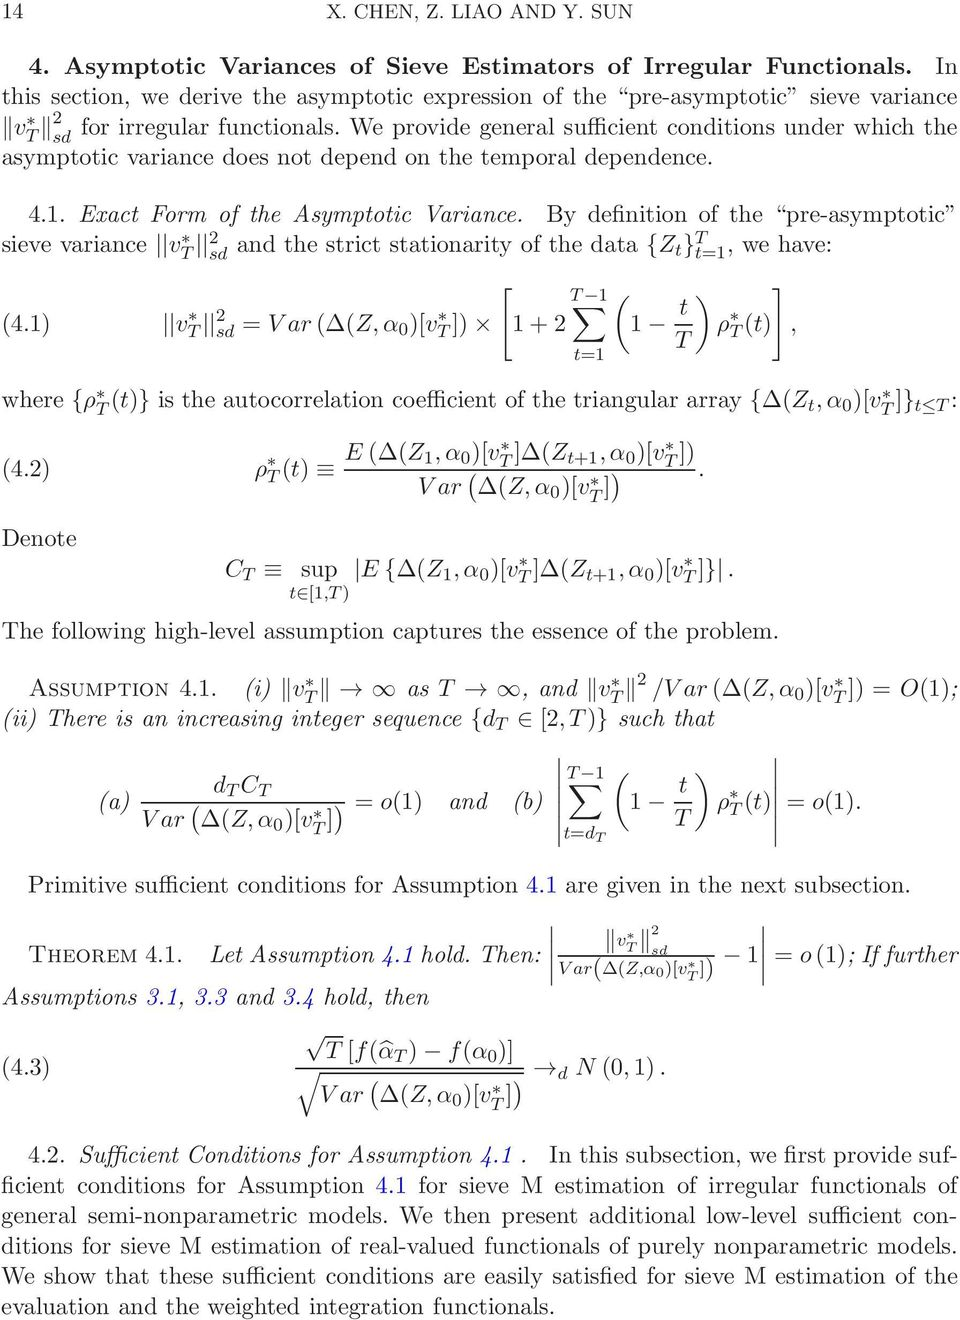 We provide general sufficient conditions under which the asymptotic variance does not depend on the temporal dependence. 4.1. Exact Form of the Asymptotic Variance.